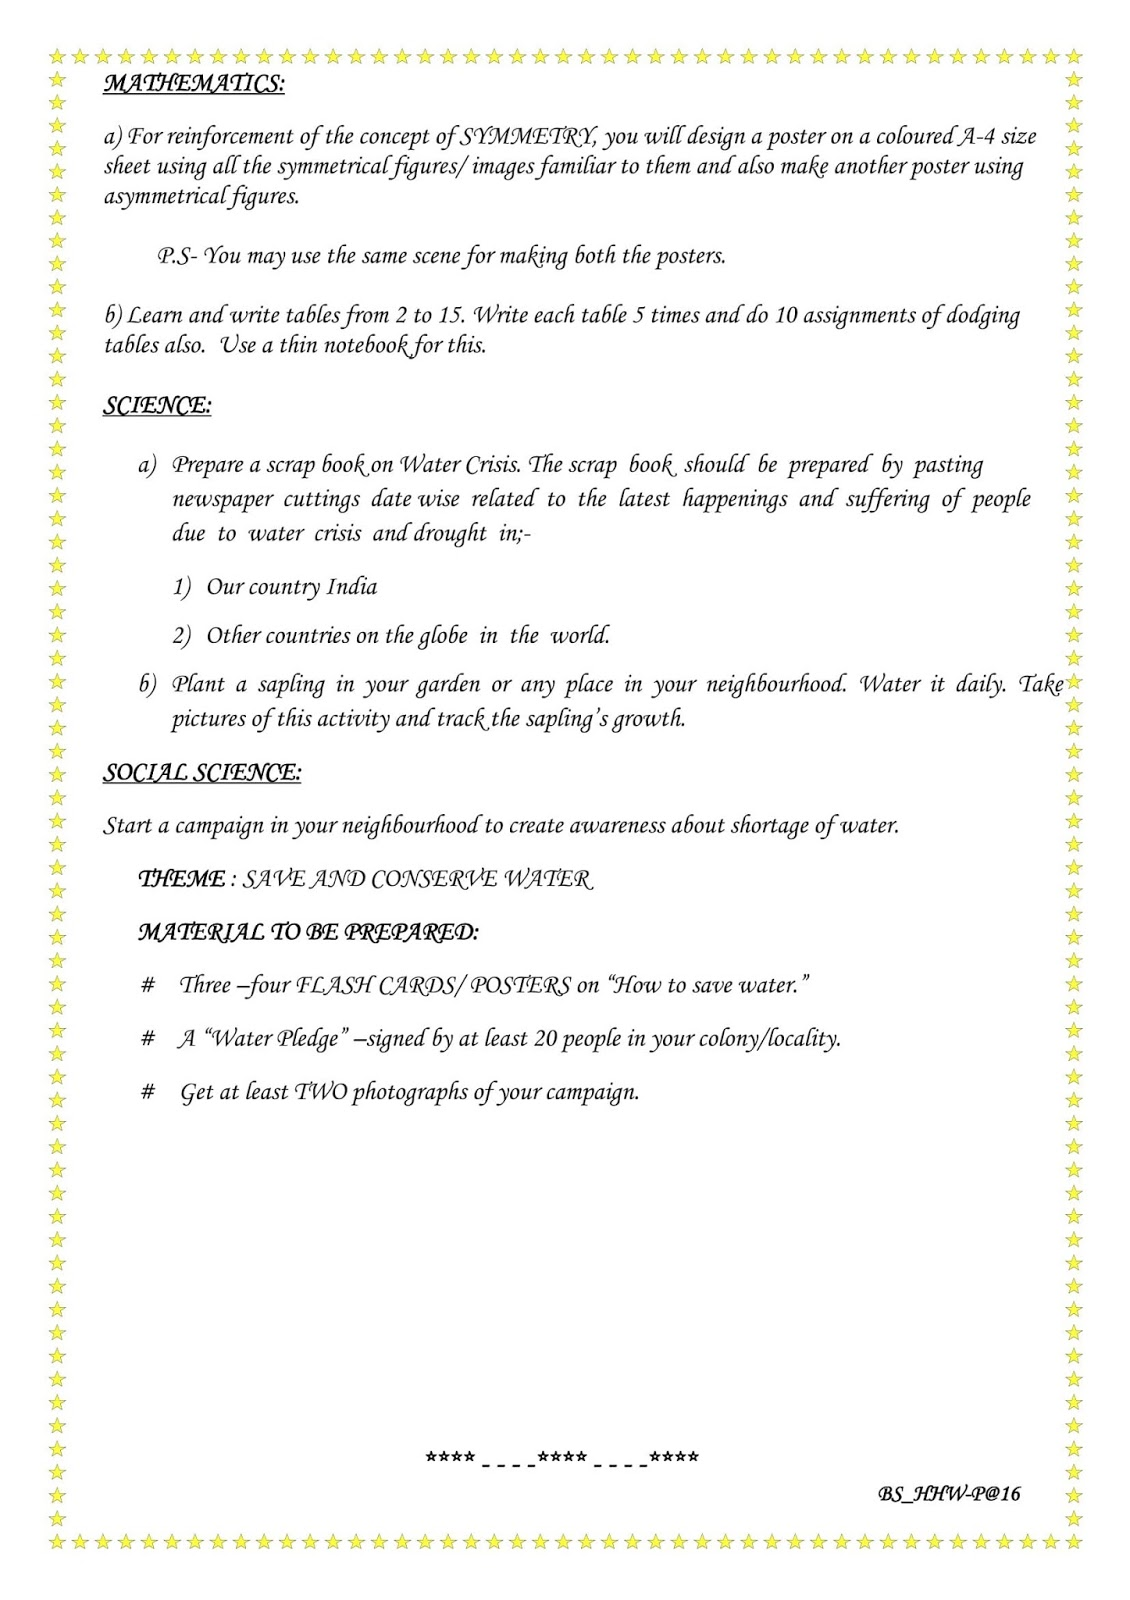 dps indirapuram holiday homework for class 6